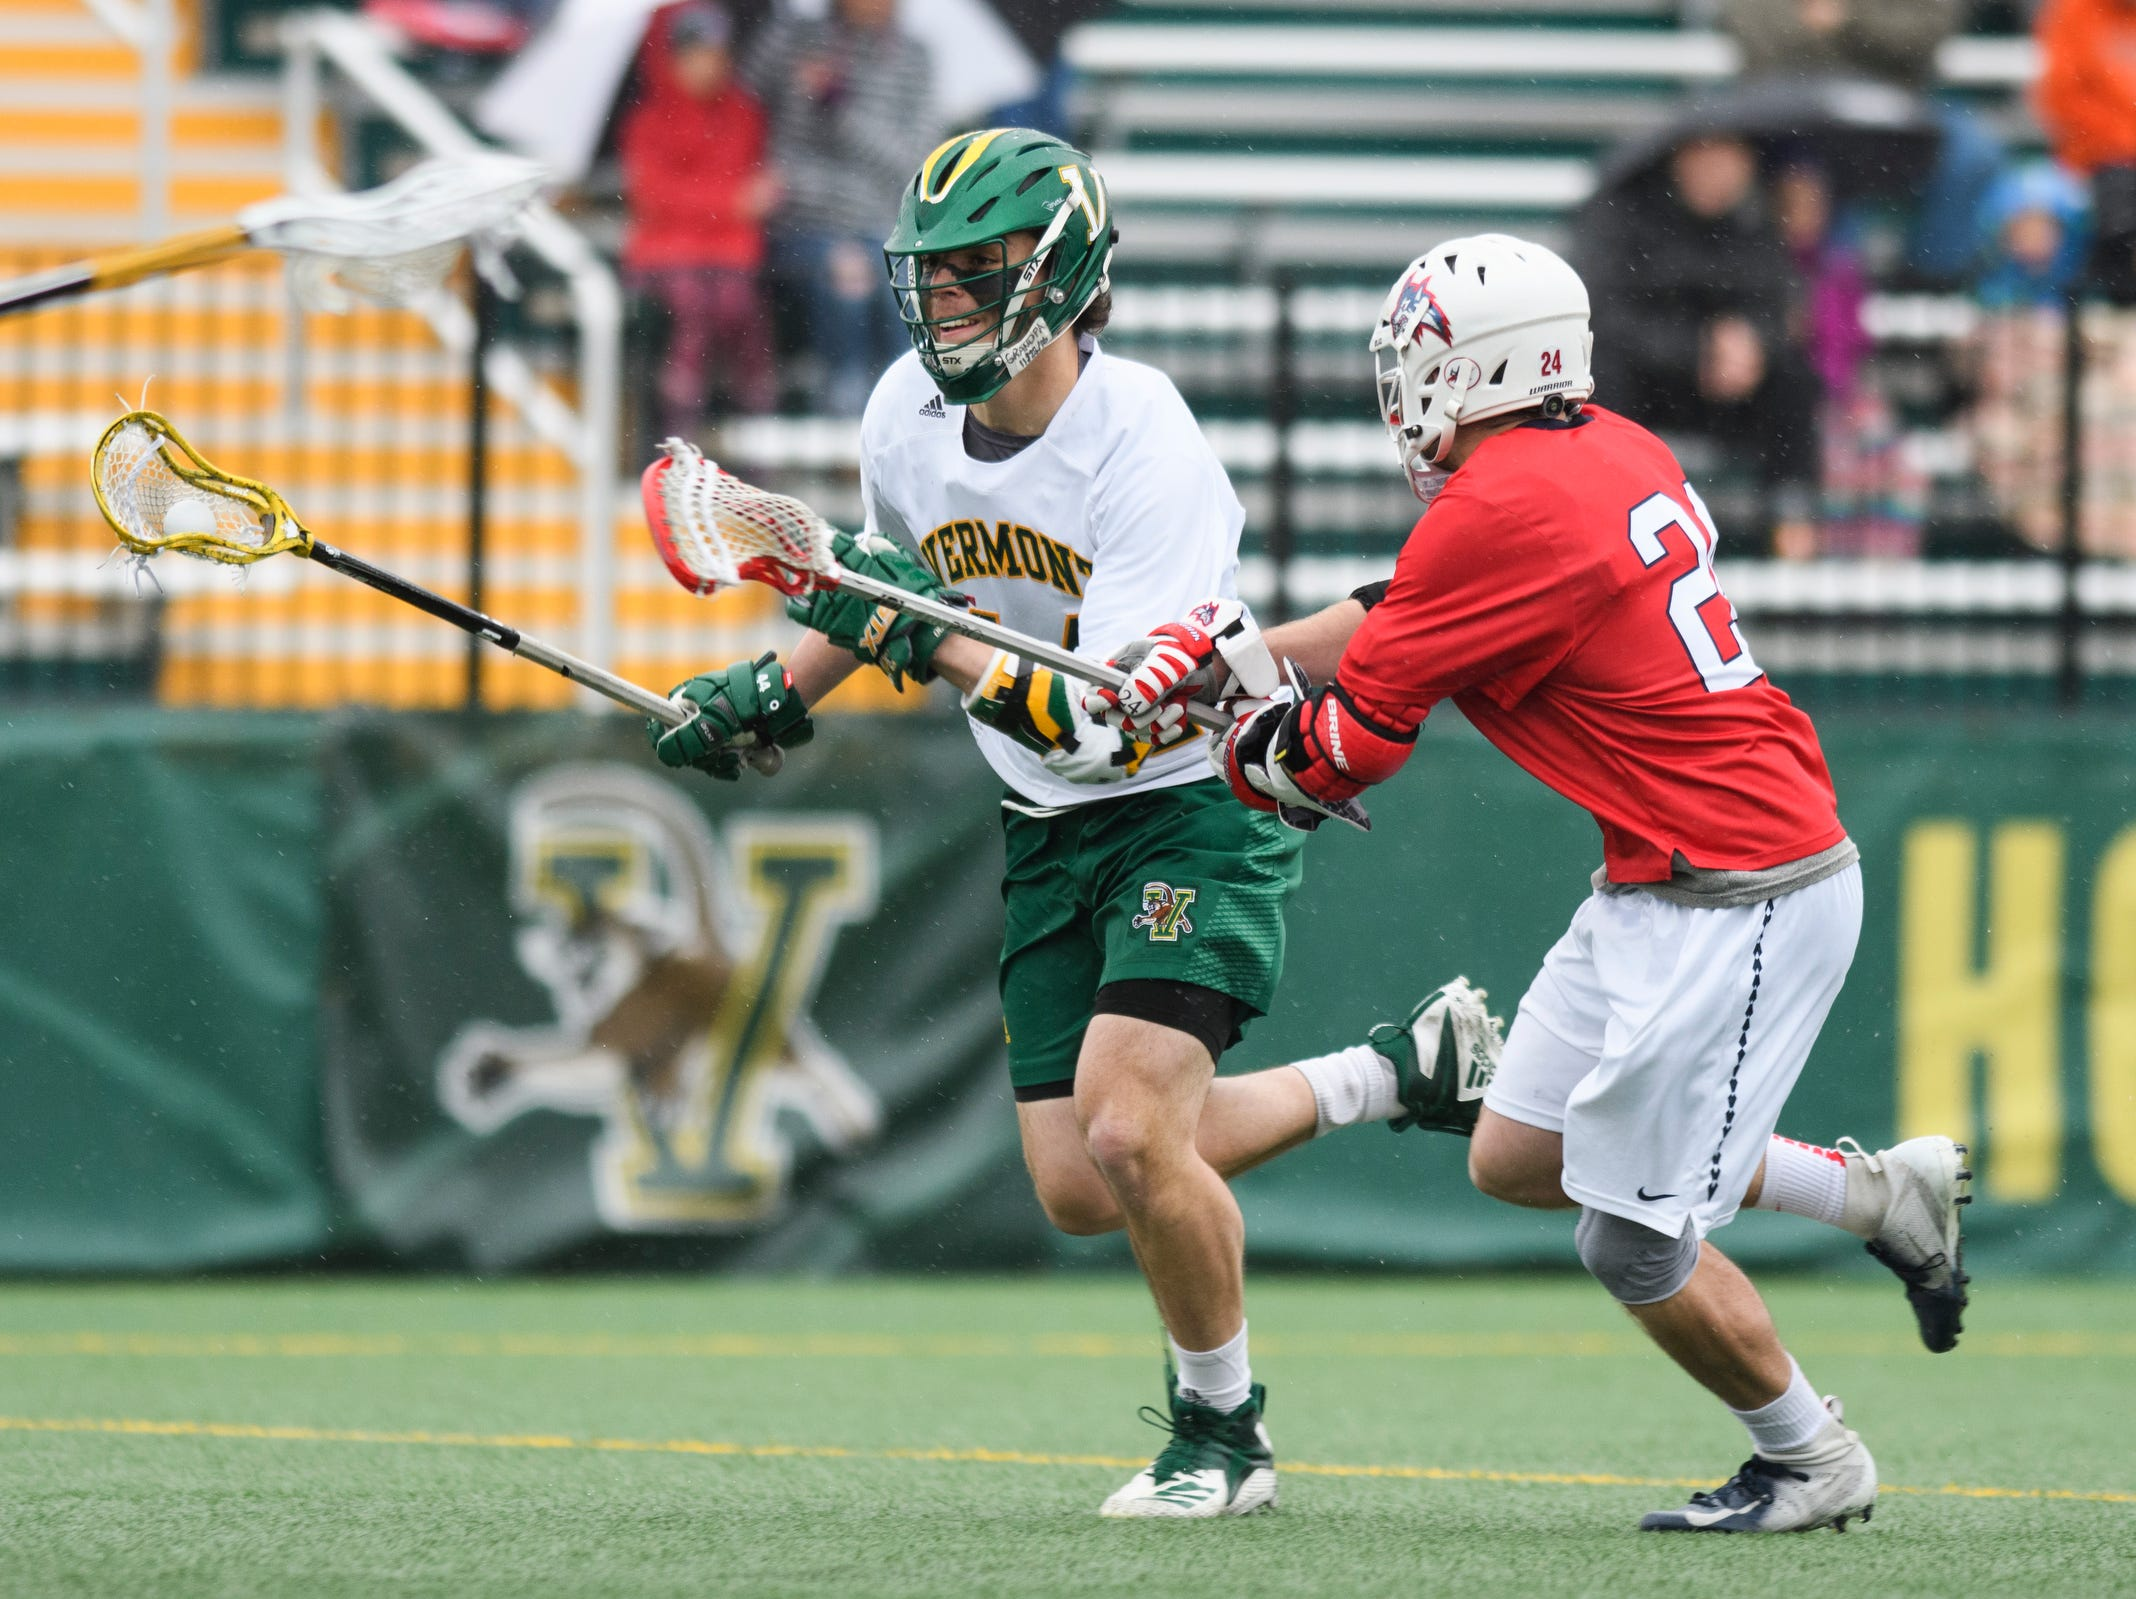 Vermont's Thomas McConvey (44) ruins past Stony Brook's Tom Dugan (24) during the men's lacrosse game between the Stony Brook Sea Wolves and the Vermont Catamounts at Virtue Field on Saturday afternoon April 20, 2019 in Burlington, Vermont.